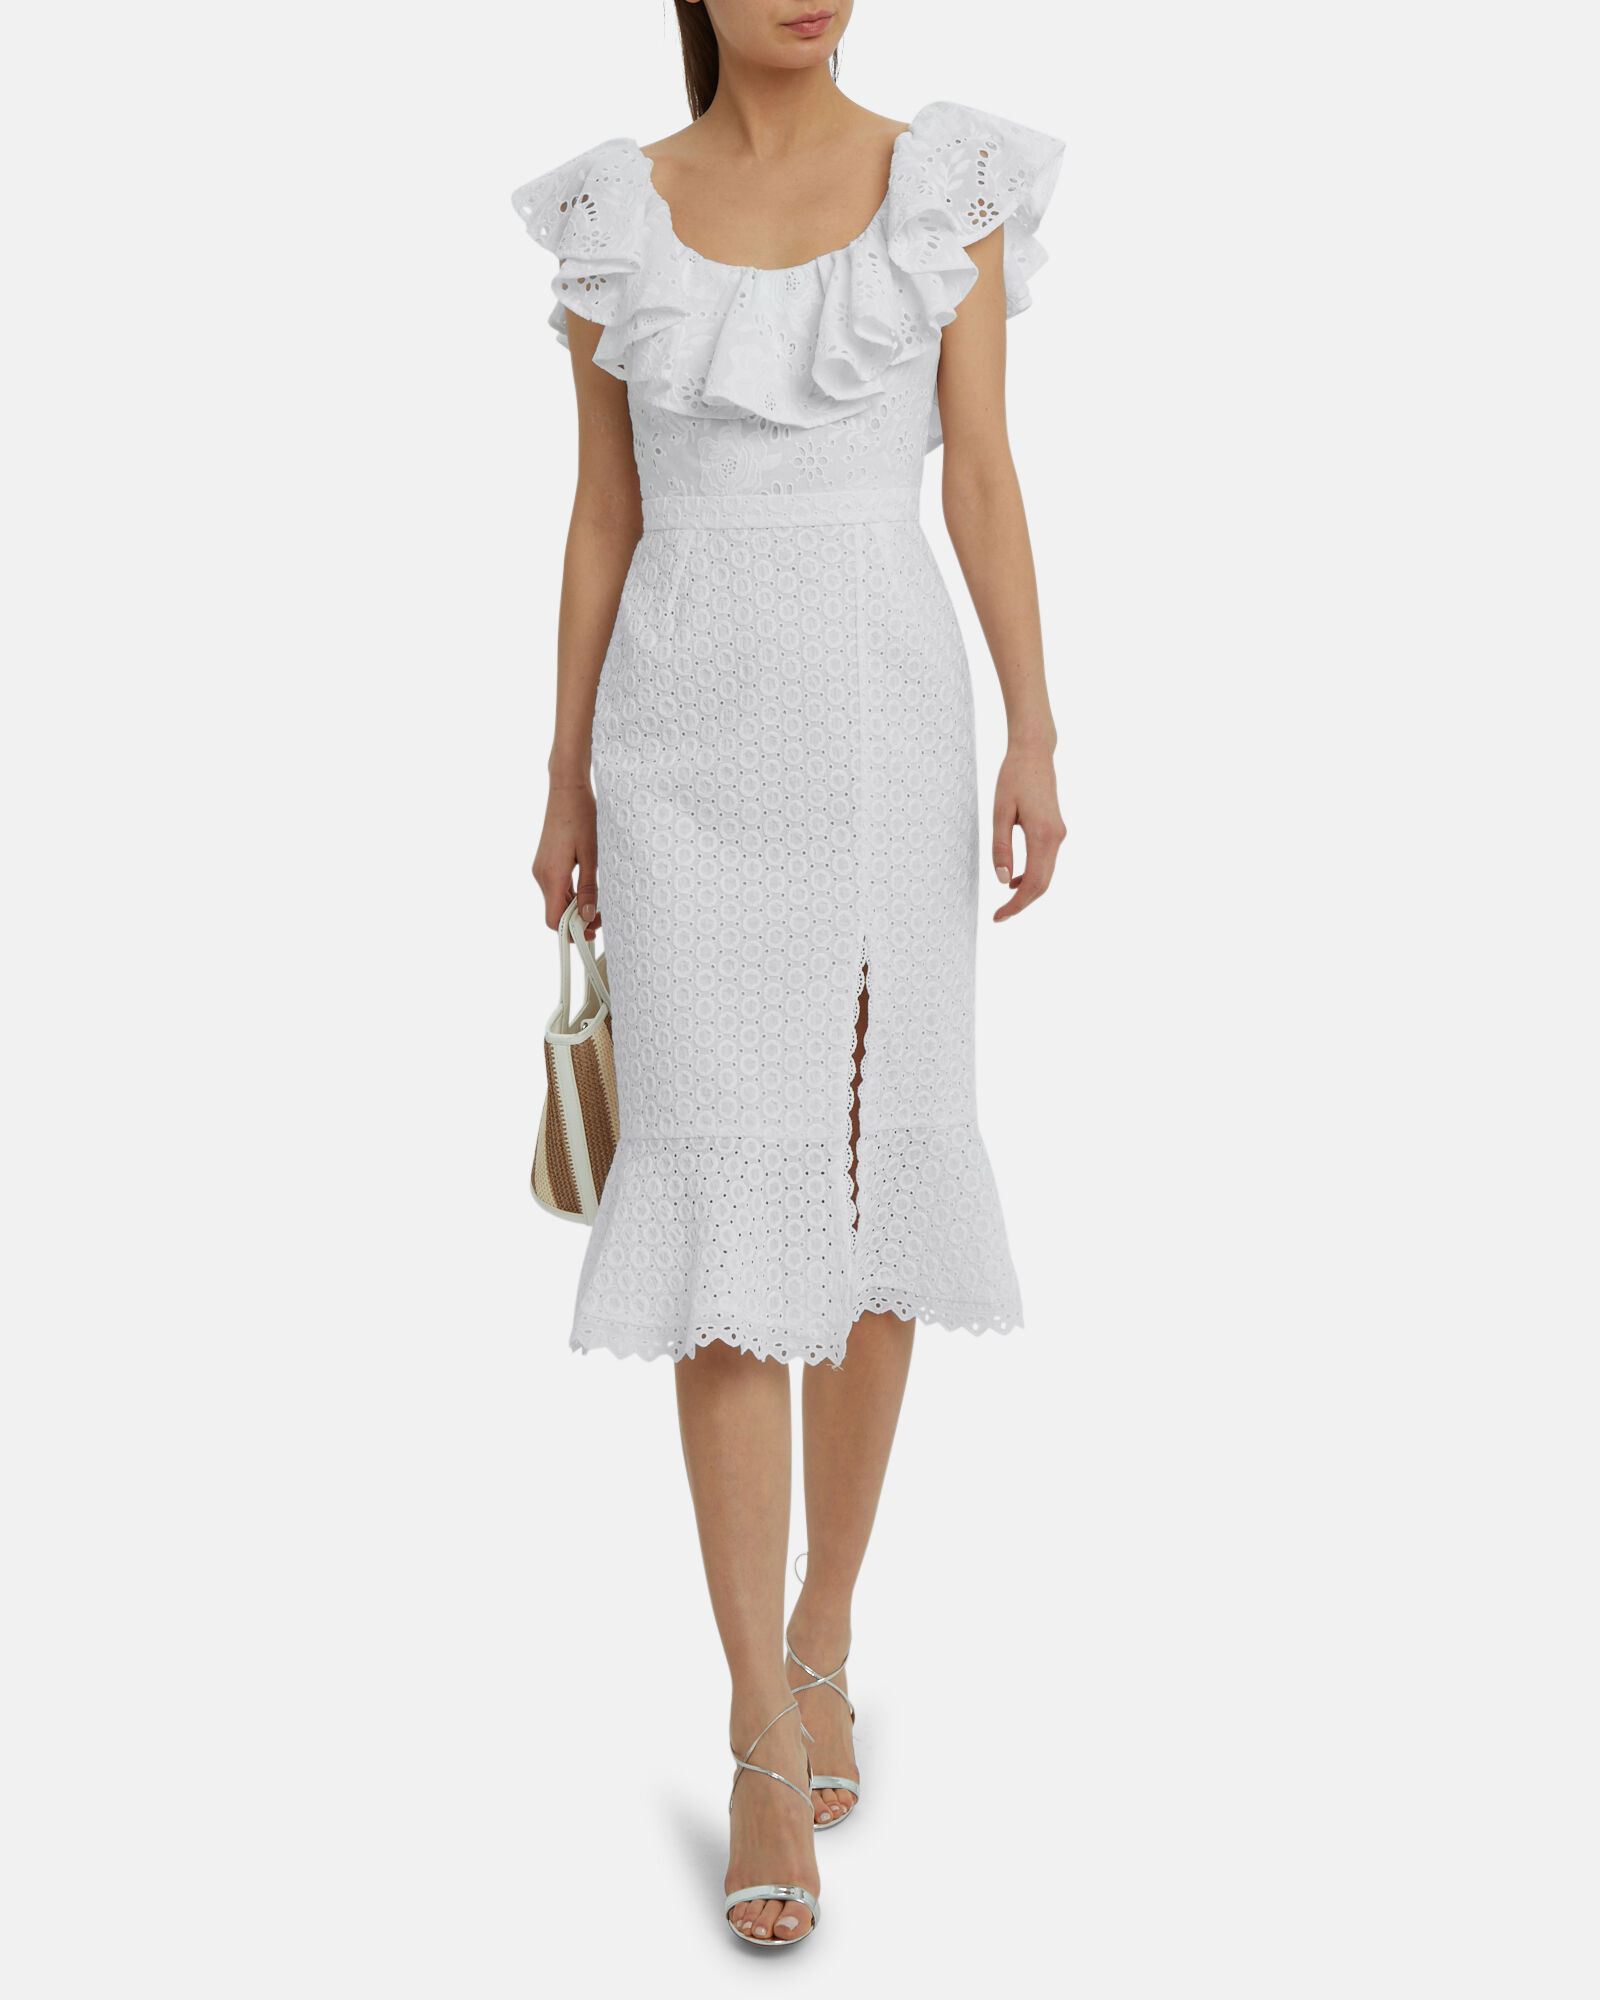 Ella Eyelet Ruffled Dress, WHITE, hi-res